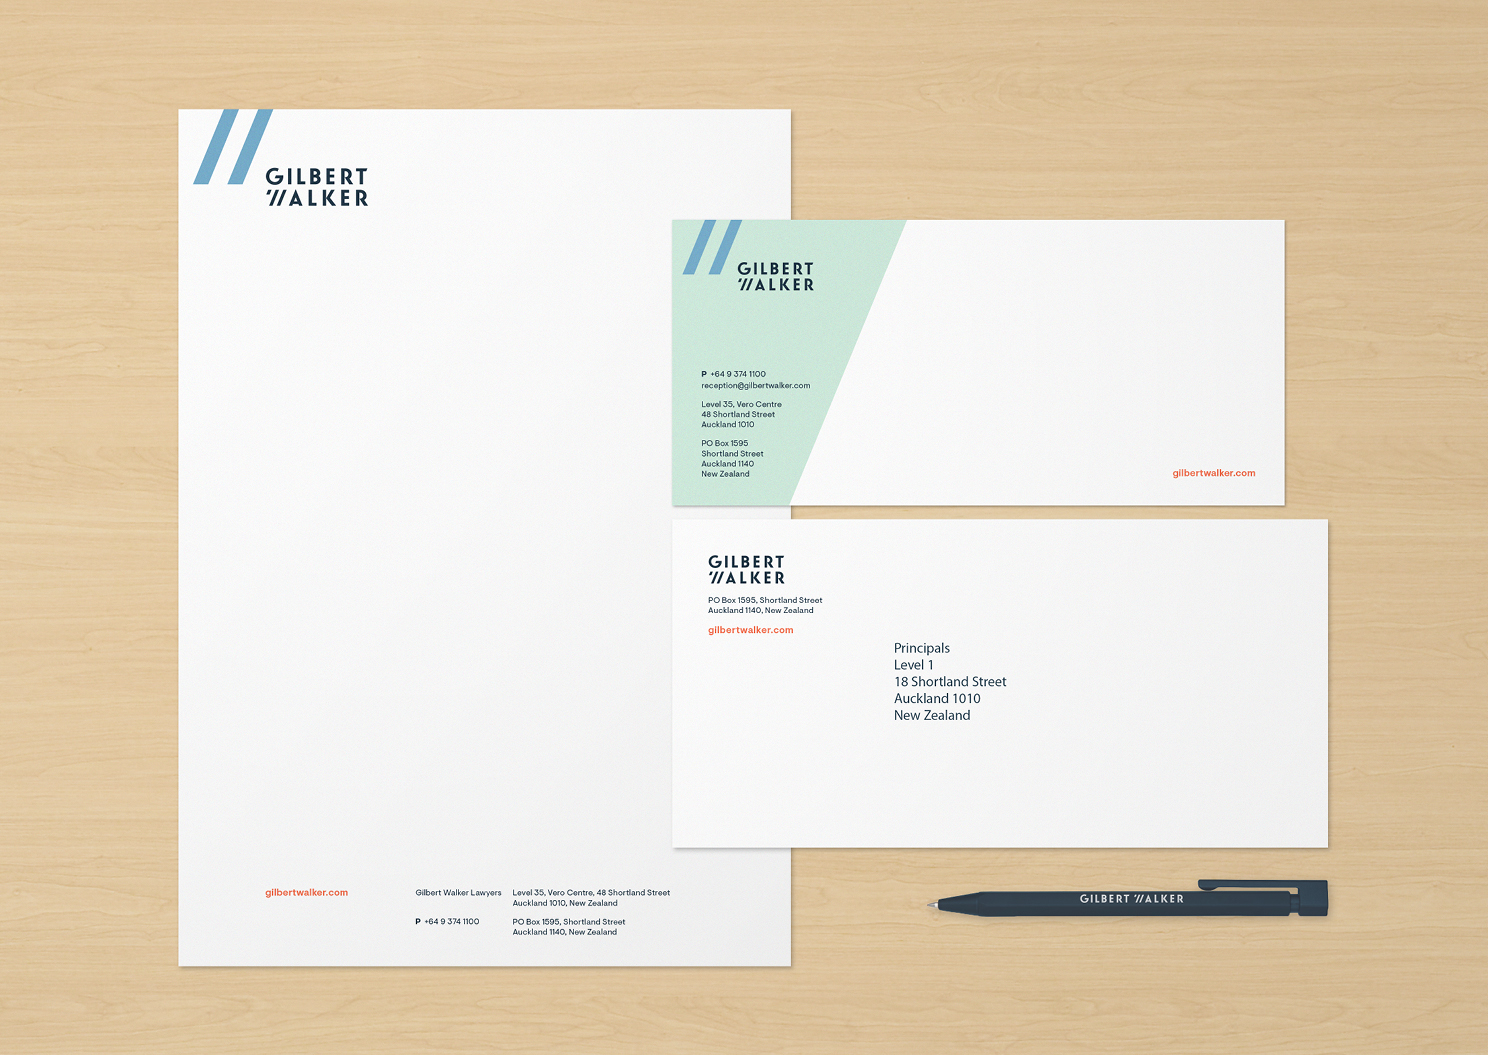 Gilbert Walker stationery